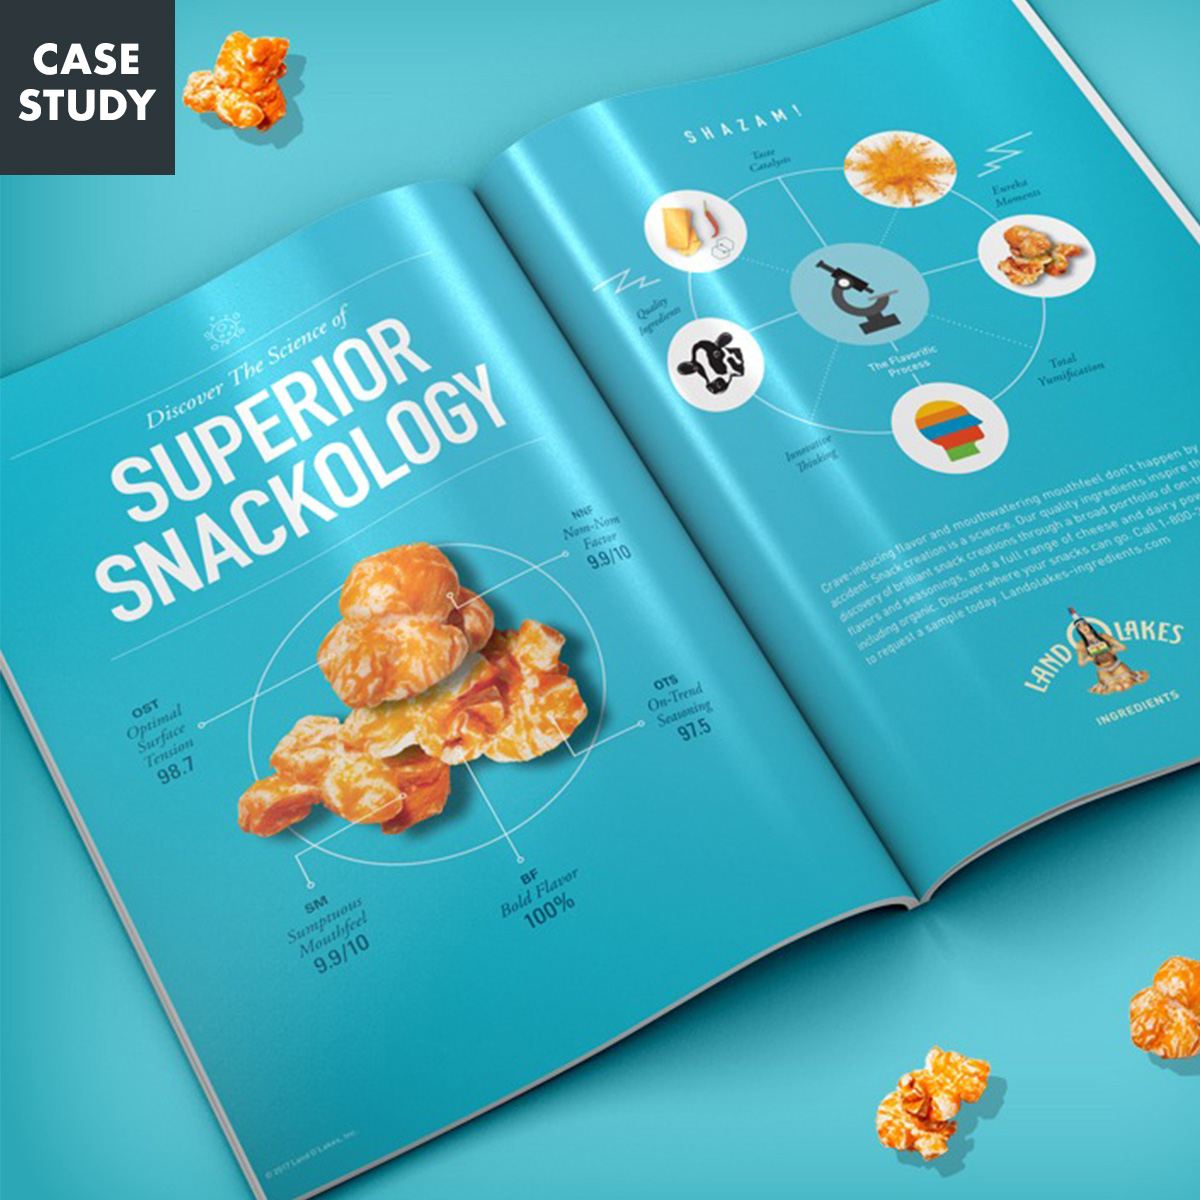 Case study: Land O'Lakes superior snackology